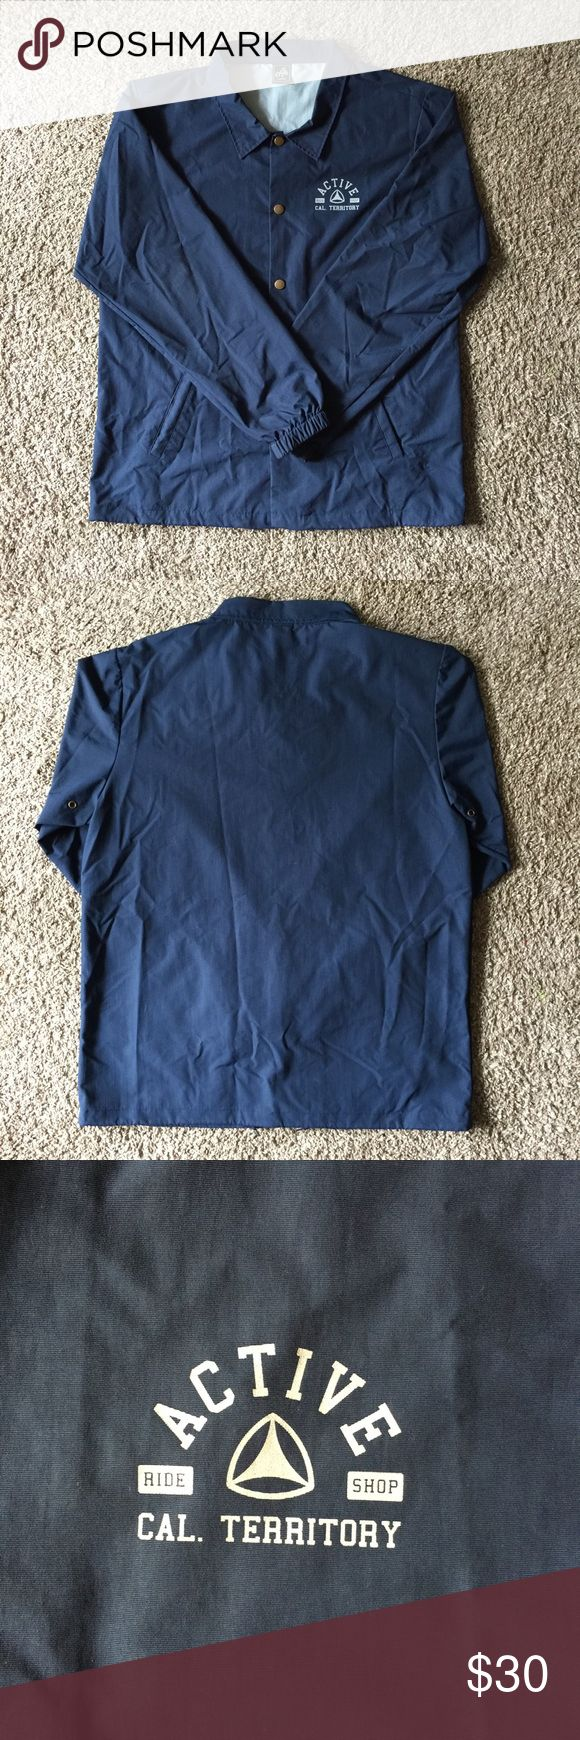 Active Windbreaker Navy blue Active windbreaker. In excellent condition. Active Ride Shop Jackets & Coats Windbreakers